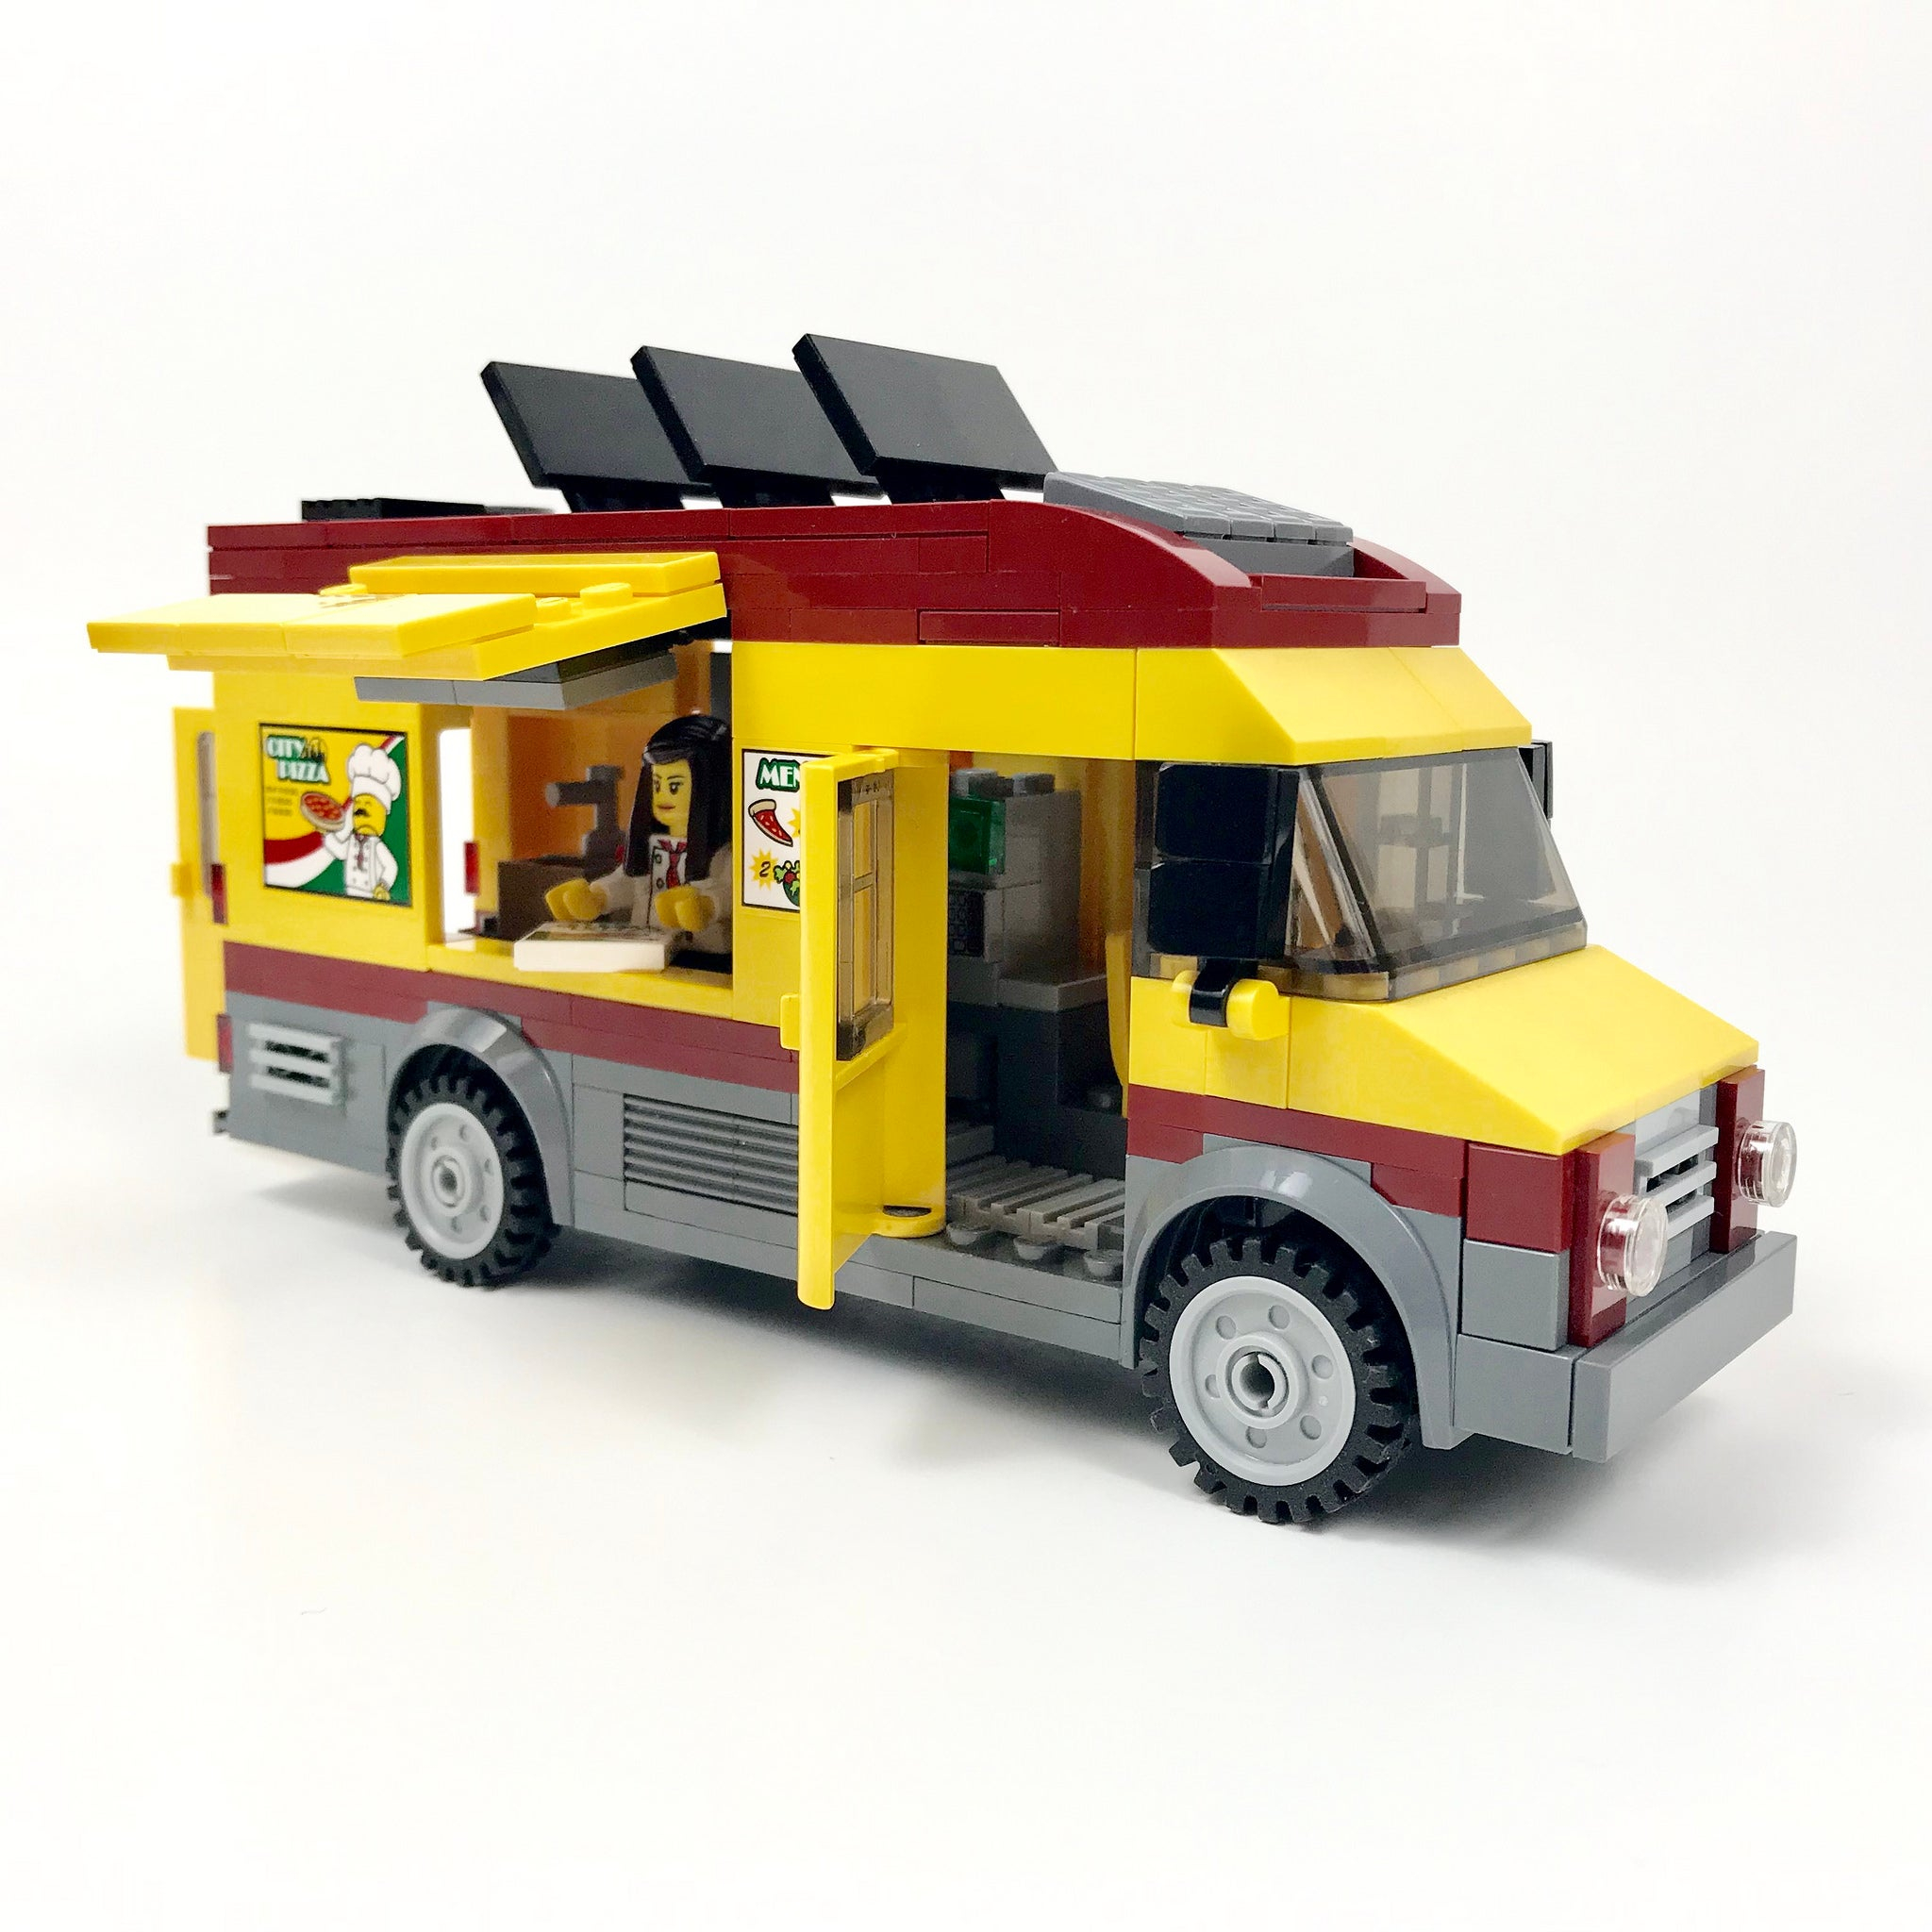 city pizza food truck moc based off